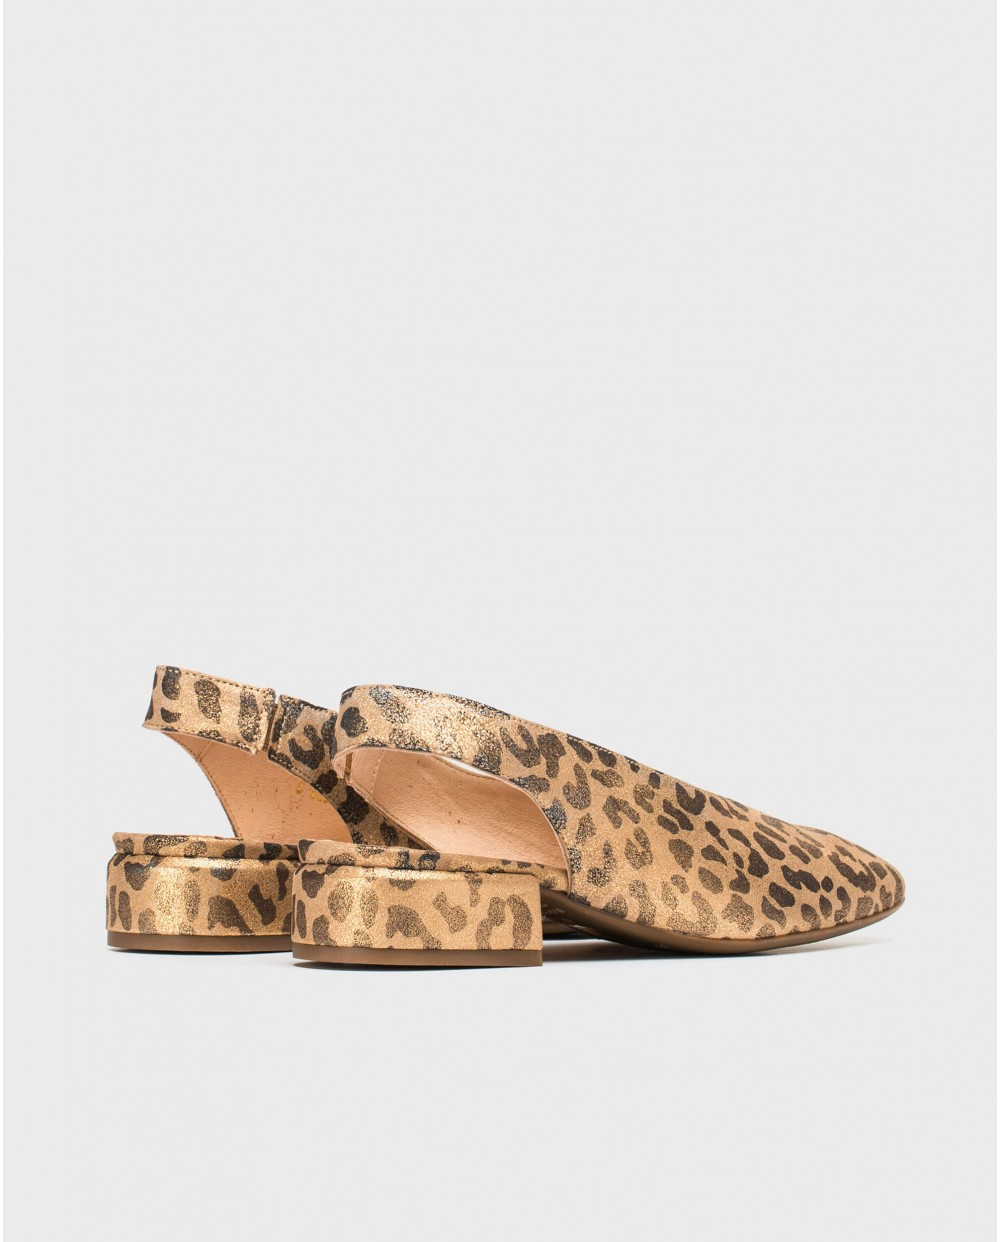 Flat sandal with animal print